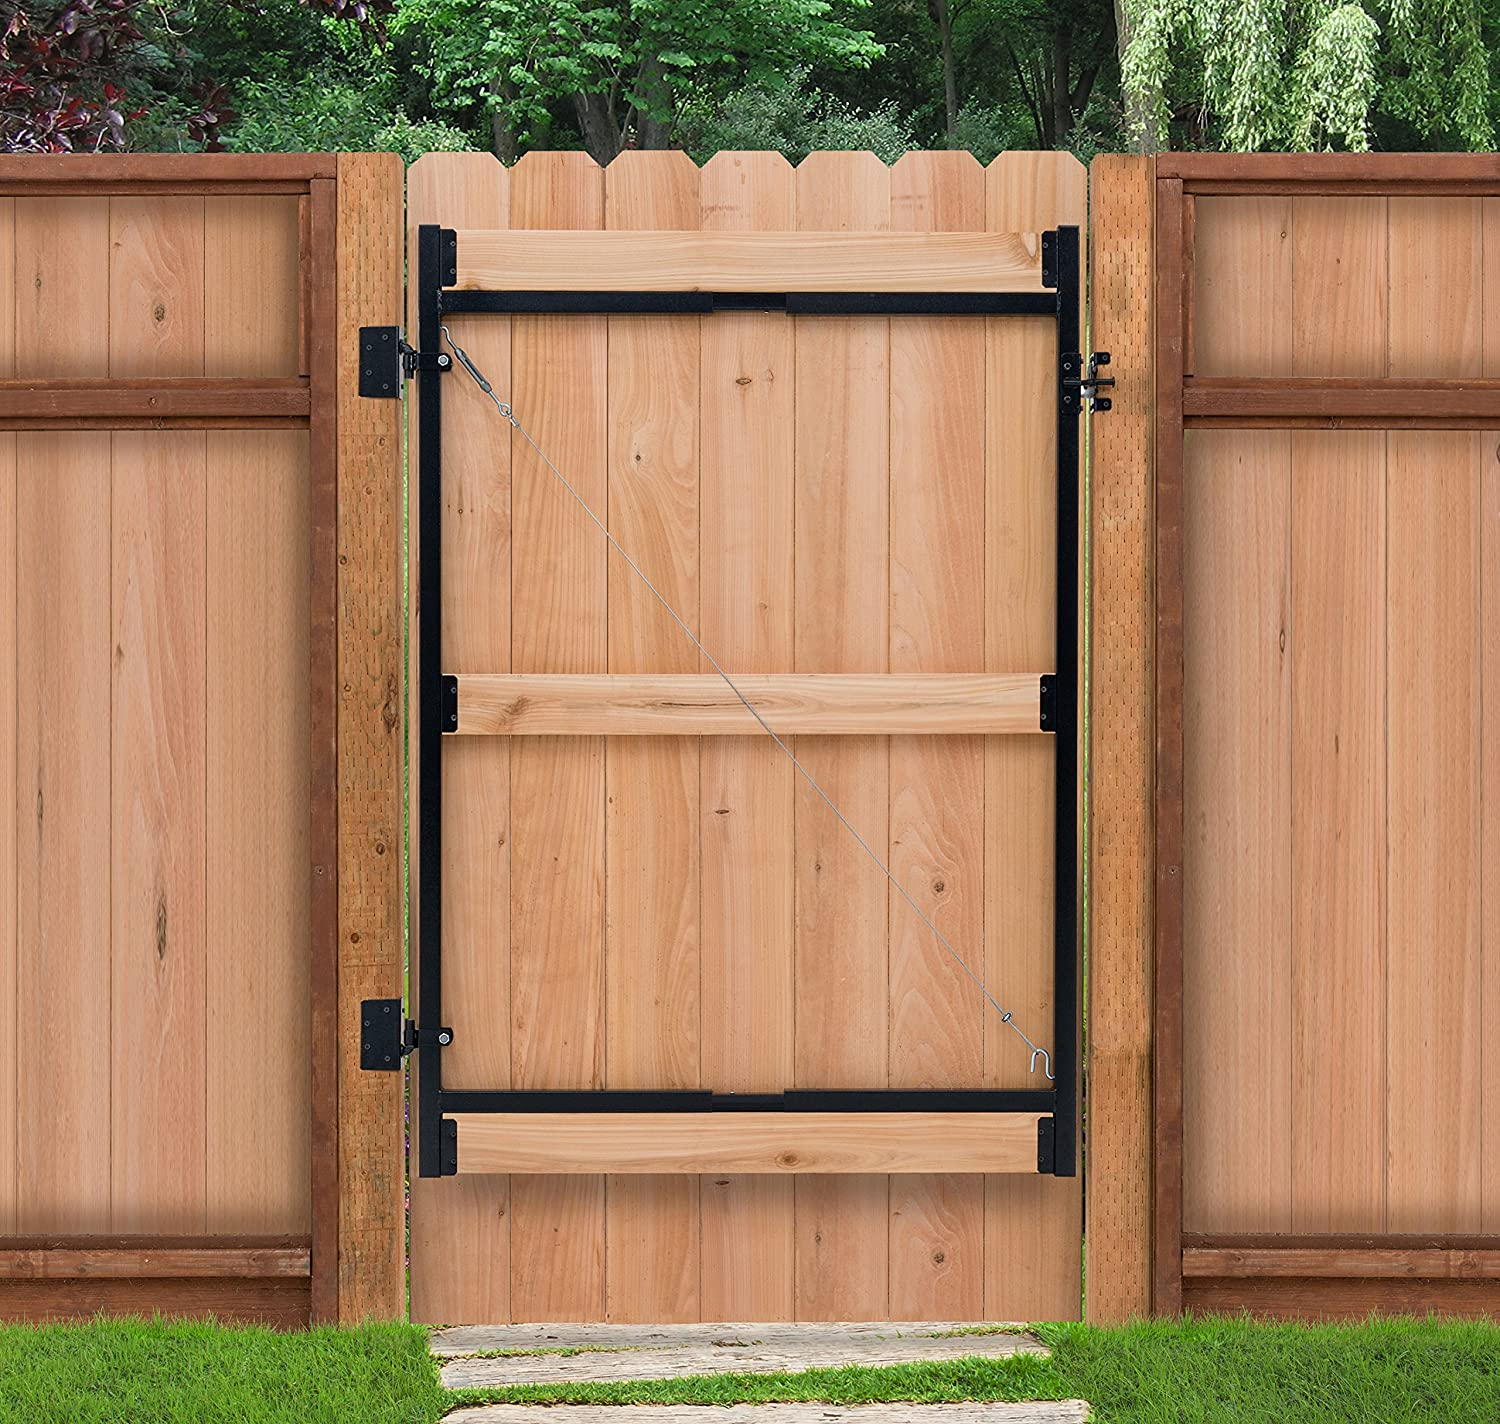 Amazon adjust a gate steel frame gate building kit 60 96 amazon adjust a gate steel frame gate building kit 60 96 wide openings up to 6 high fence home improvement baanklon Image collections